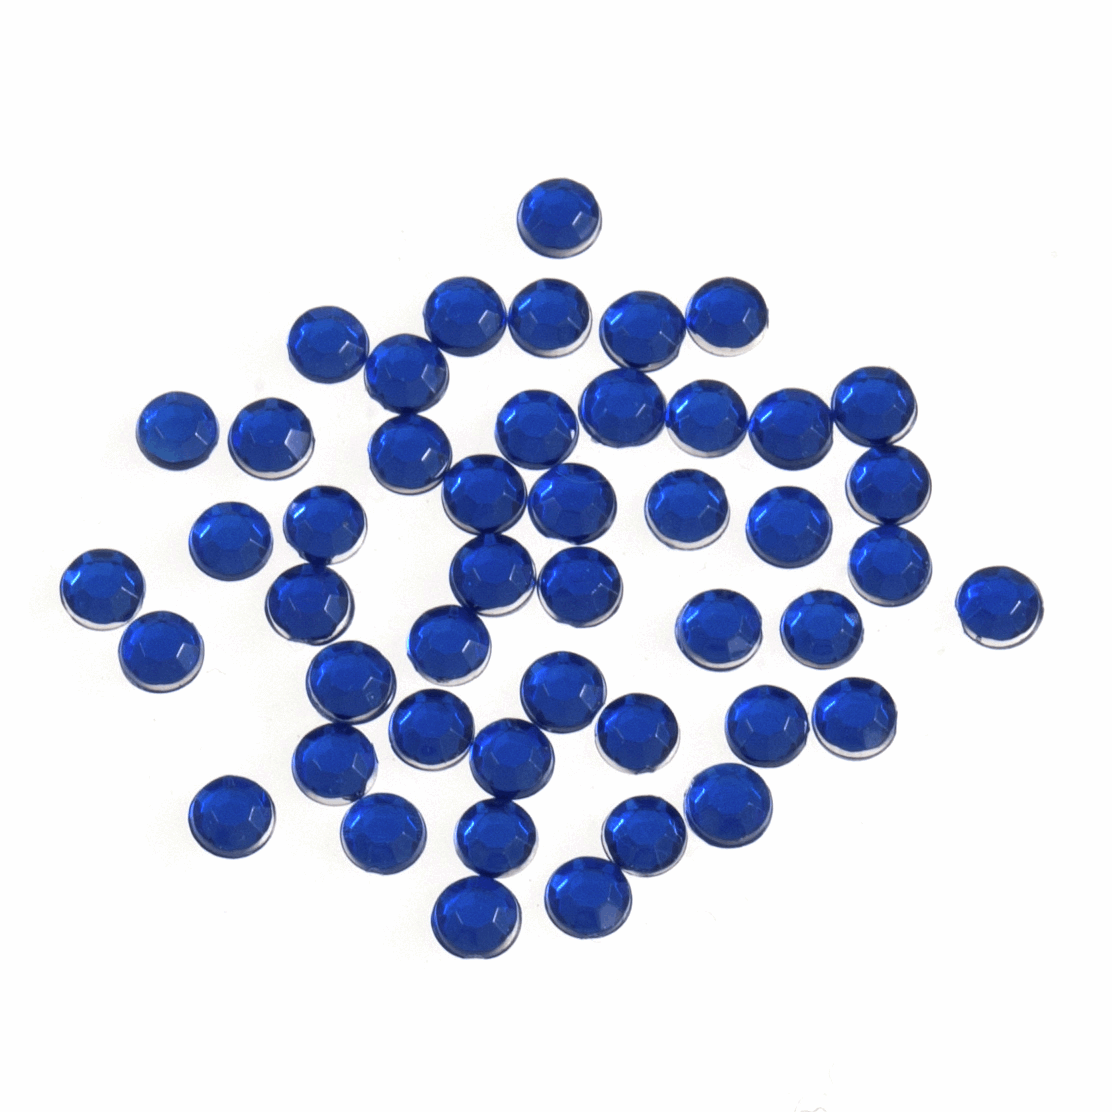 Picture of Acrylic Stones: Glue-On: Round: Small-4mm: Royal